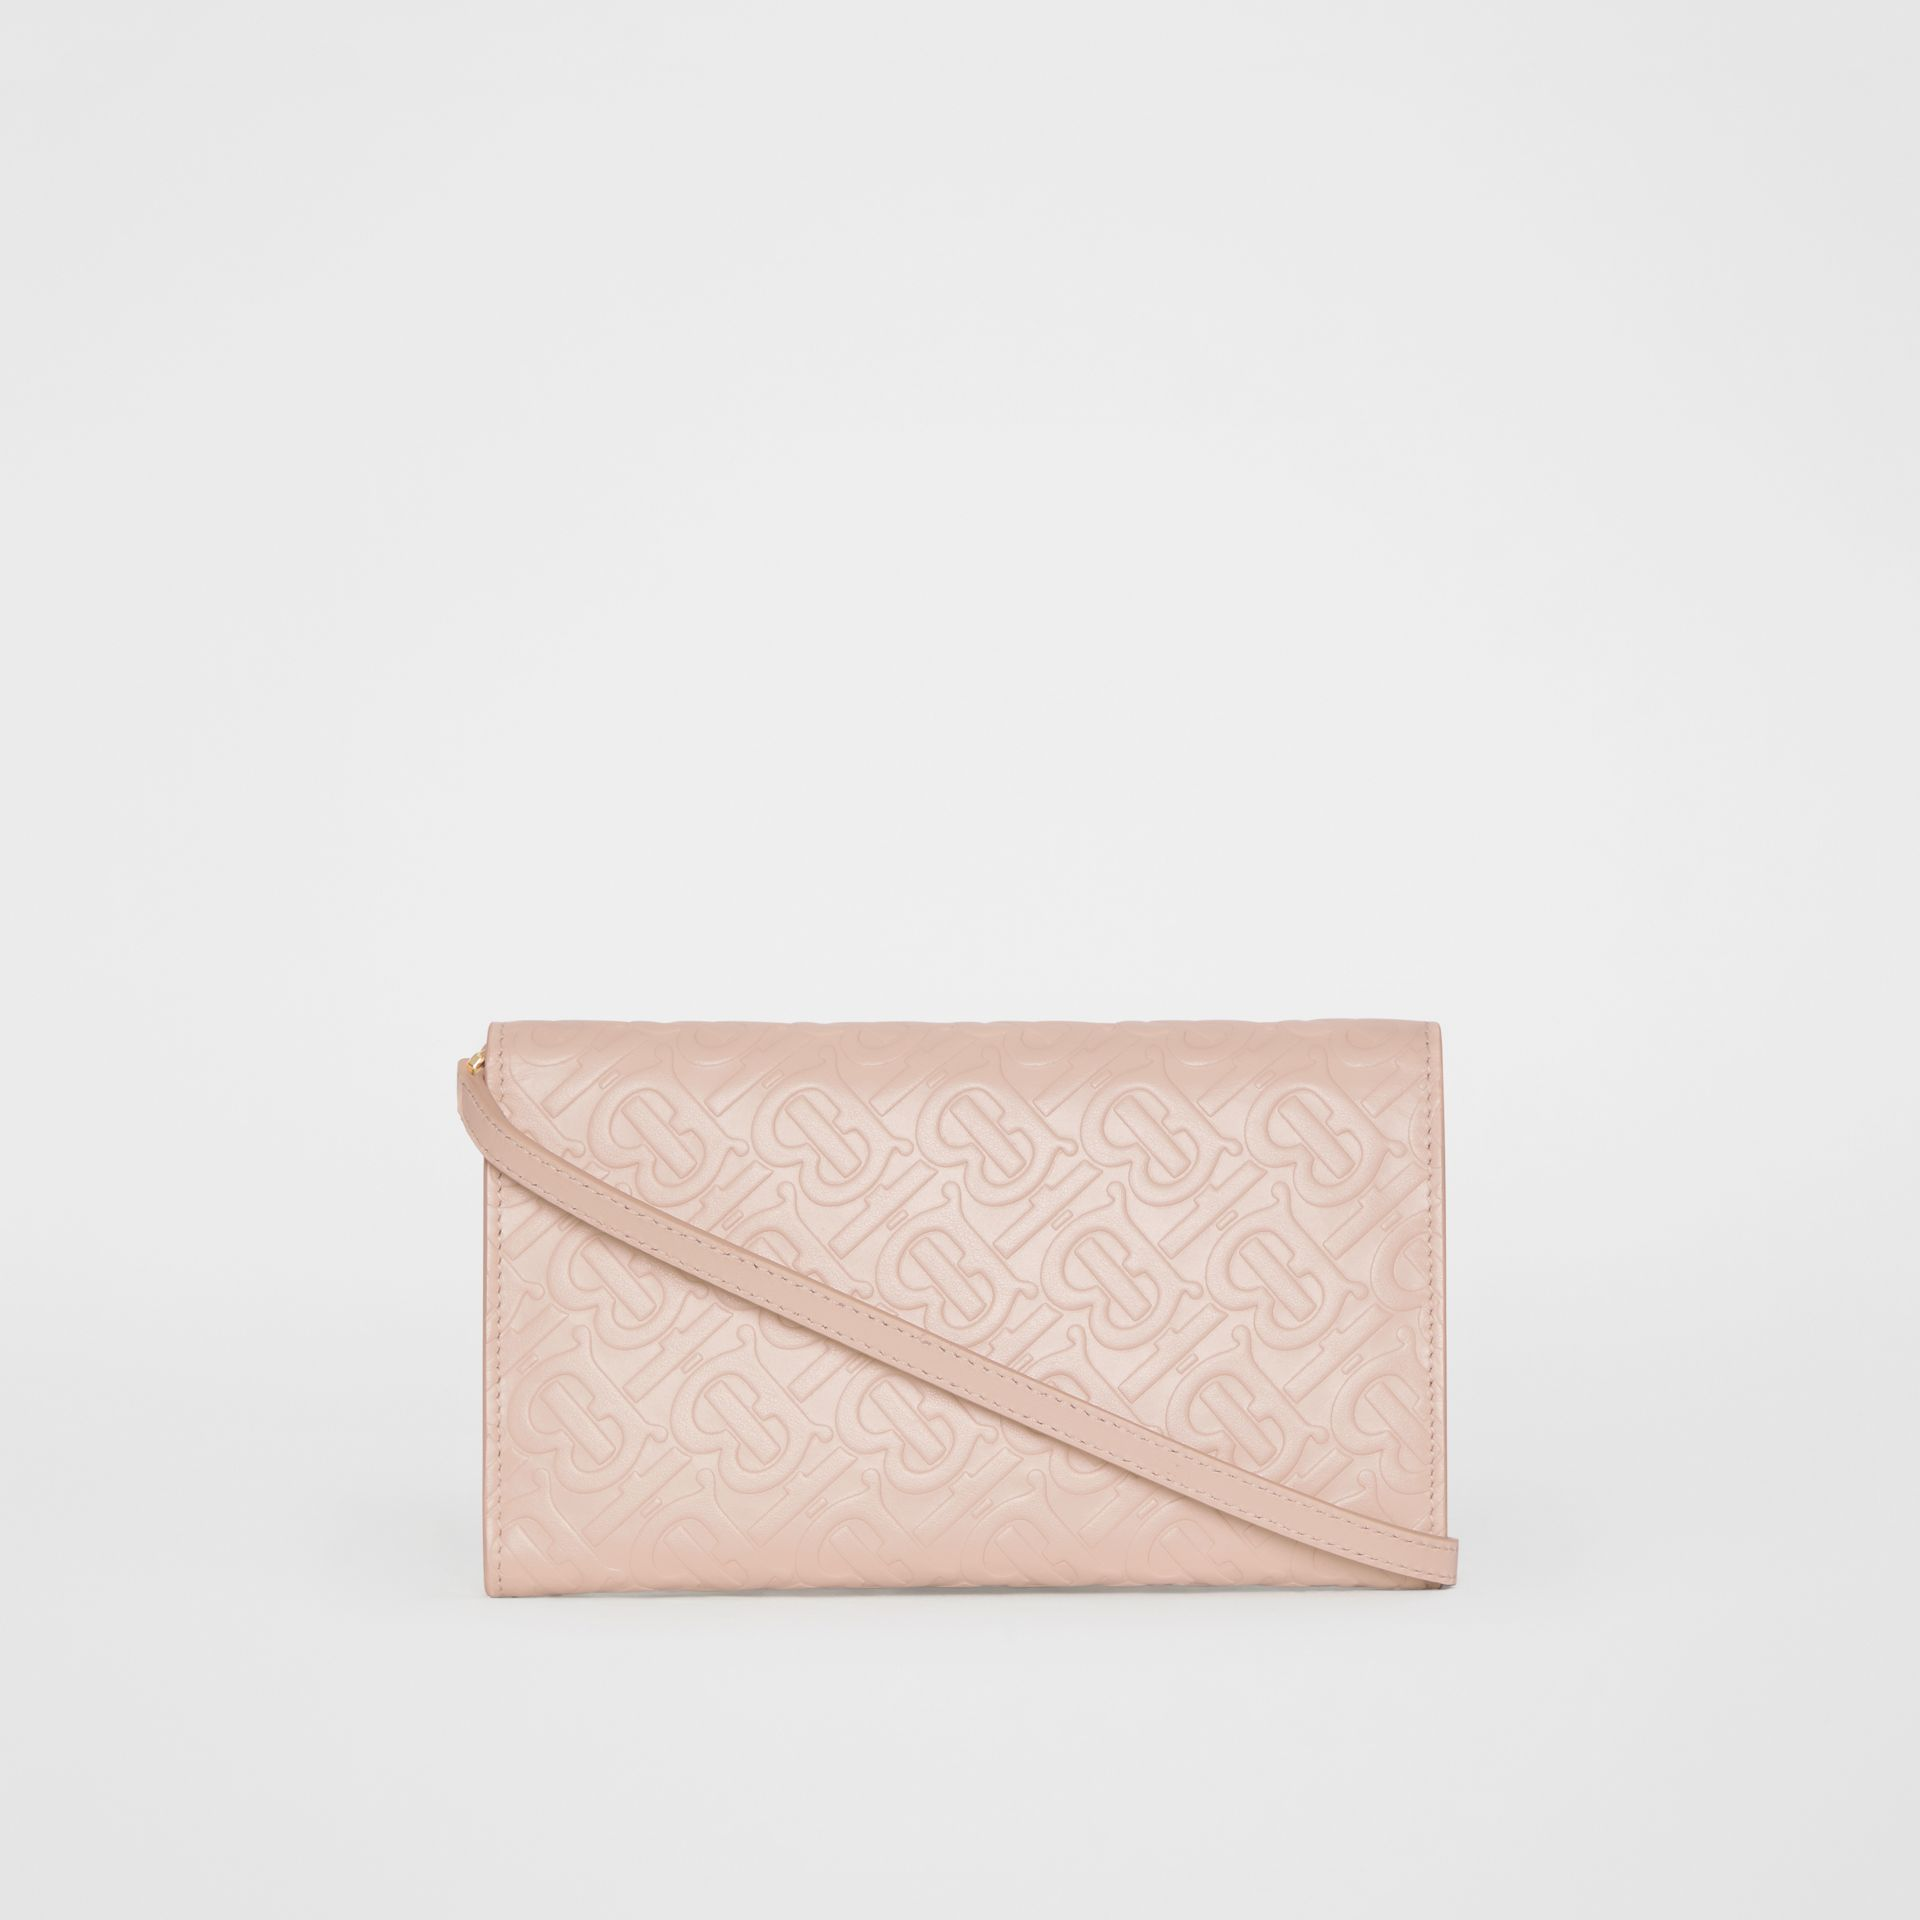 Portefeuille en cuir Monogram et sangle amovible (Beige Rose) - Femme | Burberry Canada - photo de la galerie 8